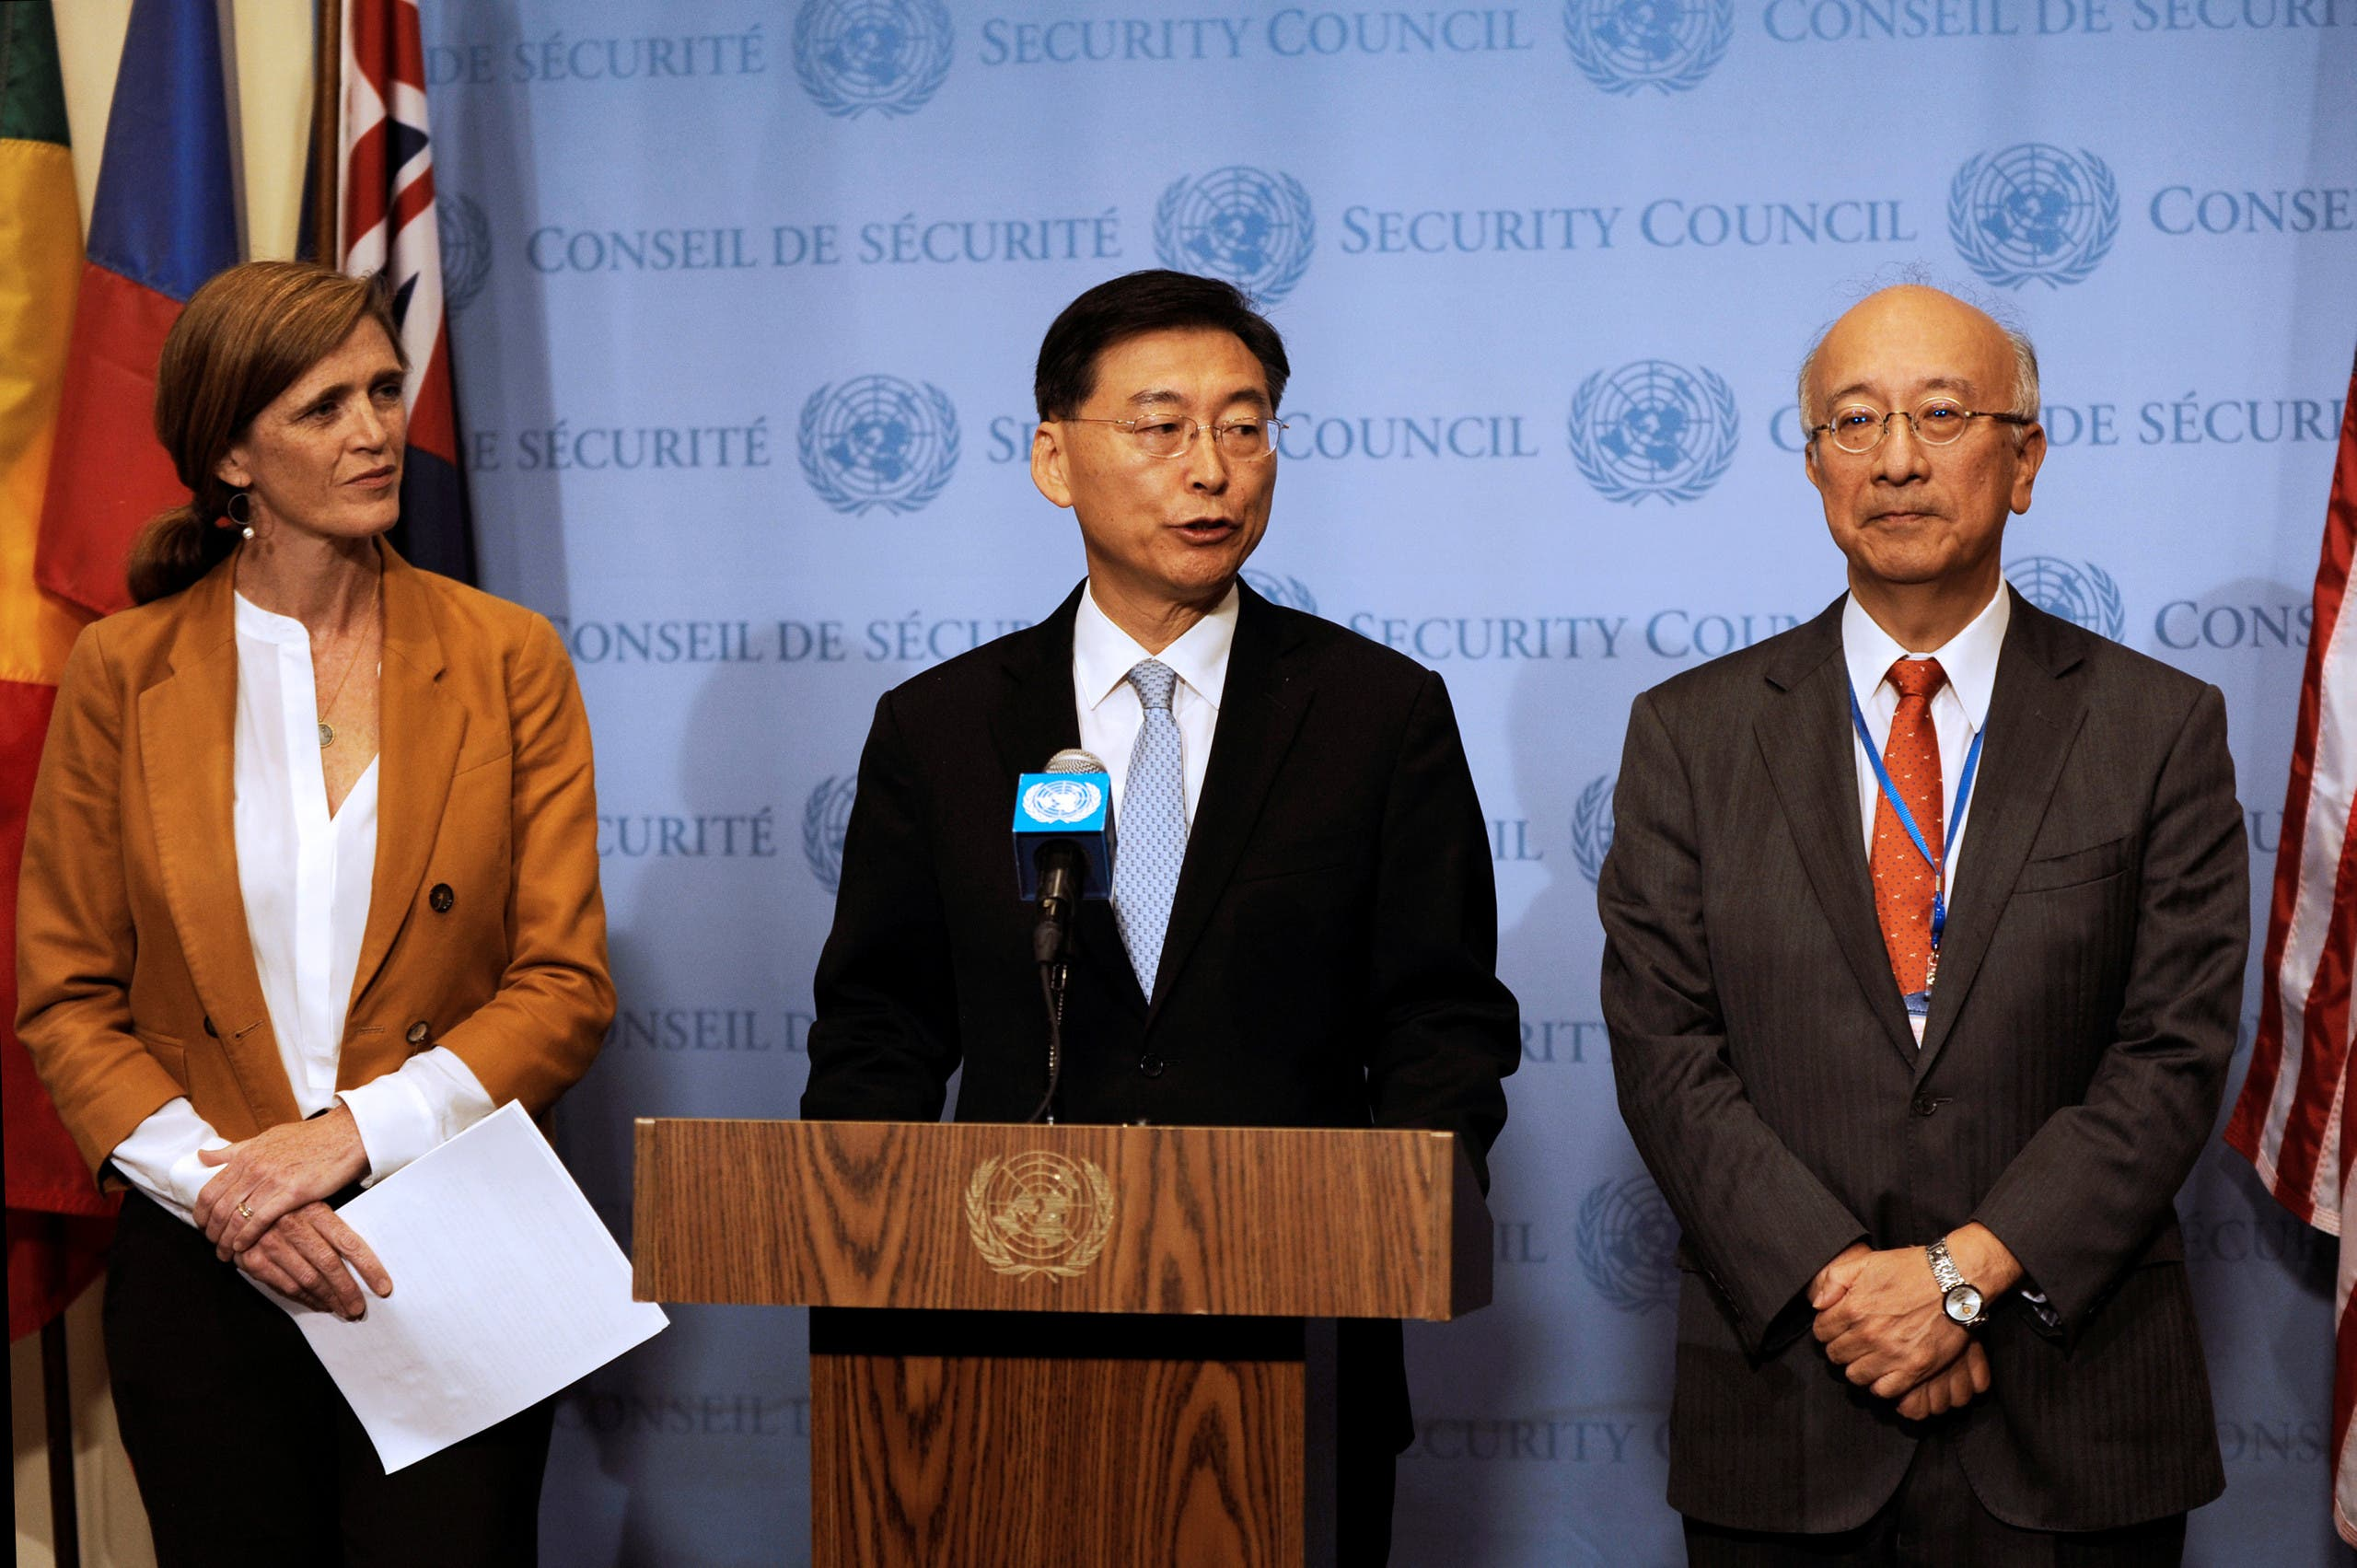 South Korean Ambassador Hahn Choong-hee (C) speaks to the press next to Japanese Ambassador Koro Bessho (R) and U.S. Ambassador Samantha Power following the United Nations Security Council closed door meeting to discuss the latest missile launches by North Korea at the United Nations in Manhattan, New York, U.S., September 6, 2016. REUTERS/